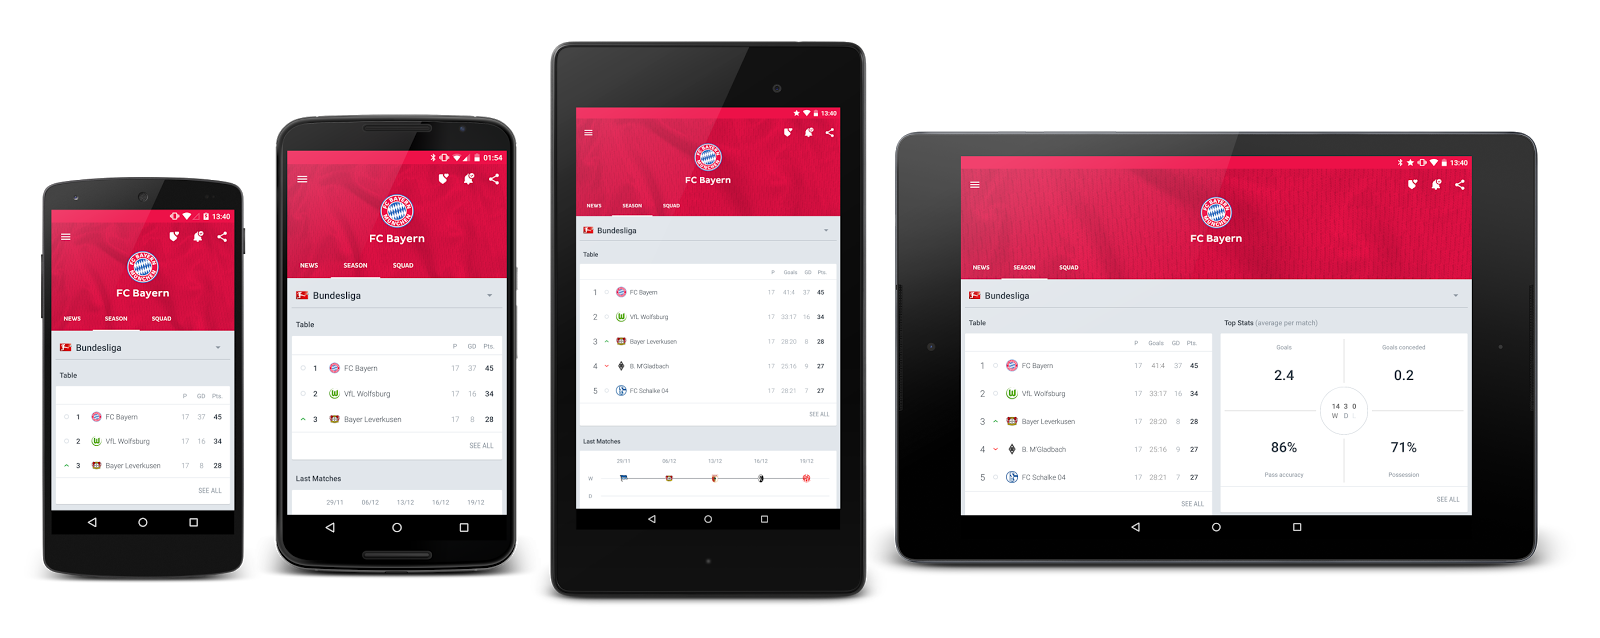 Android UI Patterns: How We Created Scalable UI - A Case Study